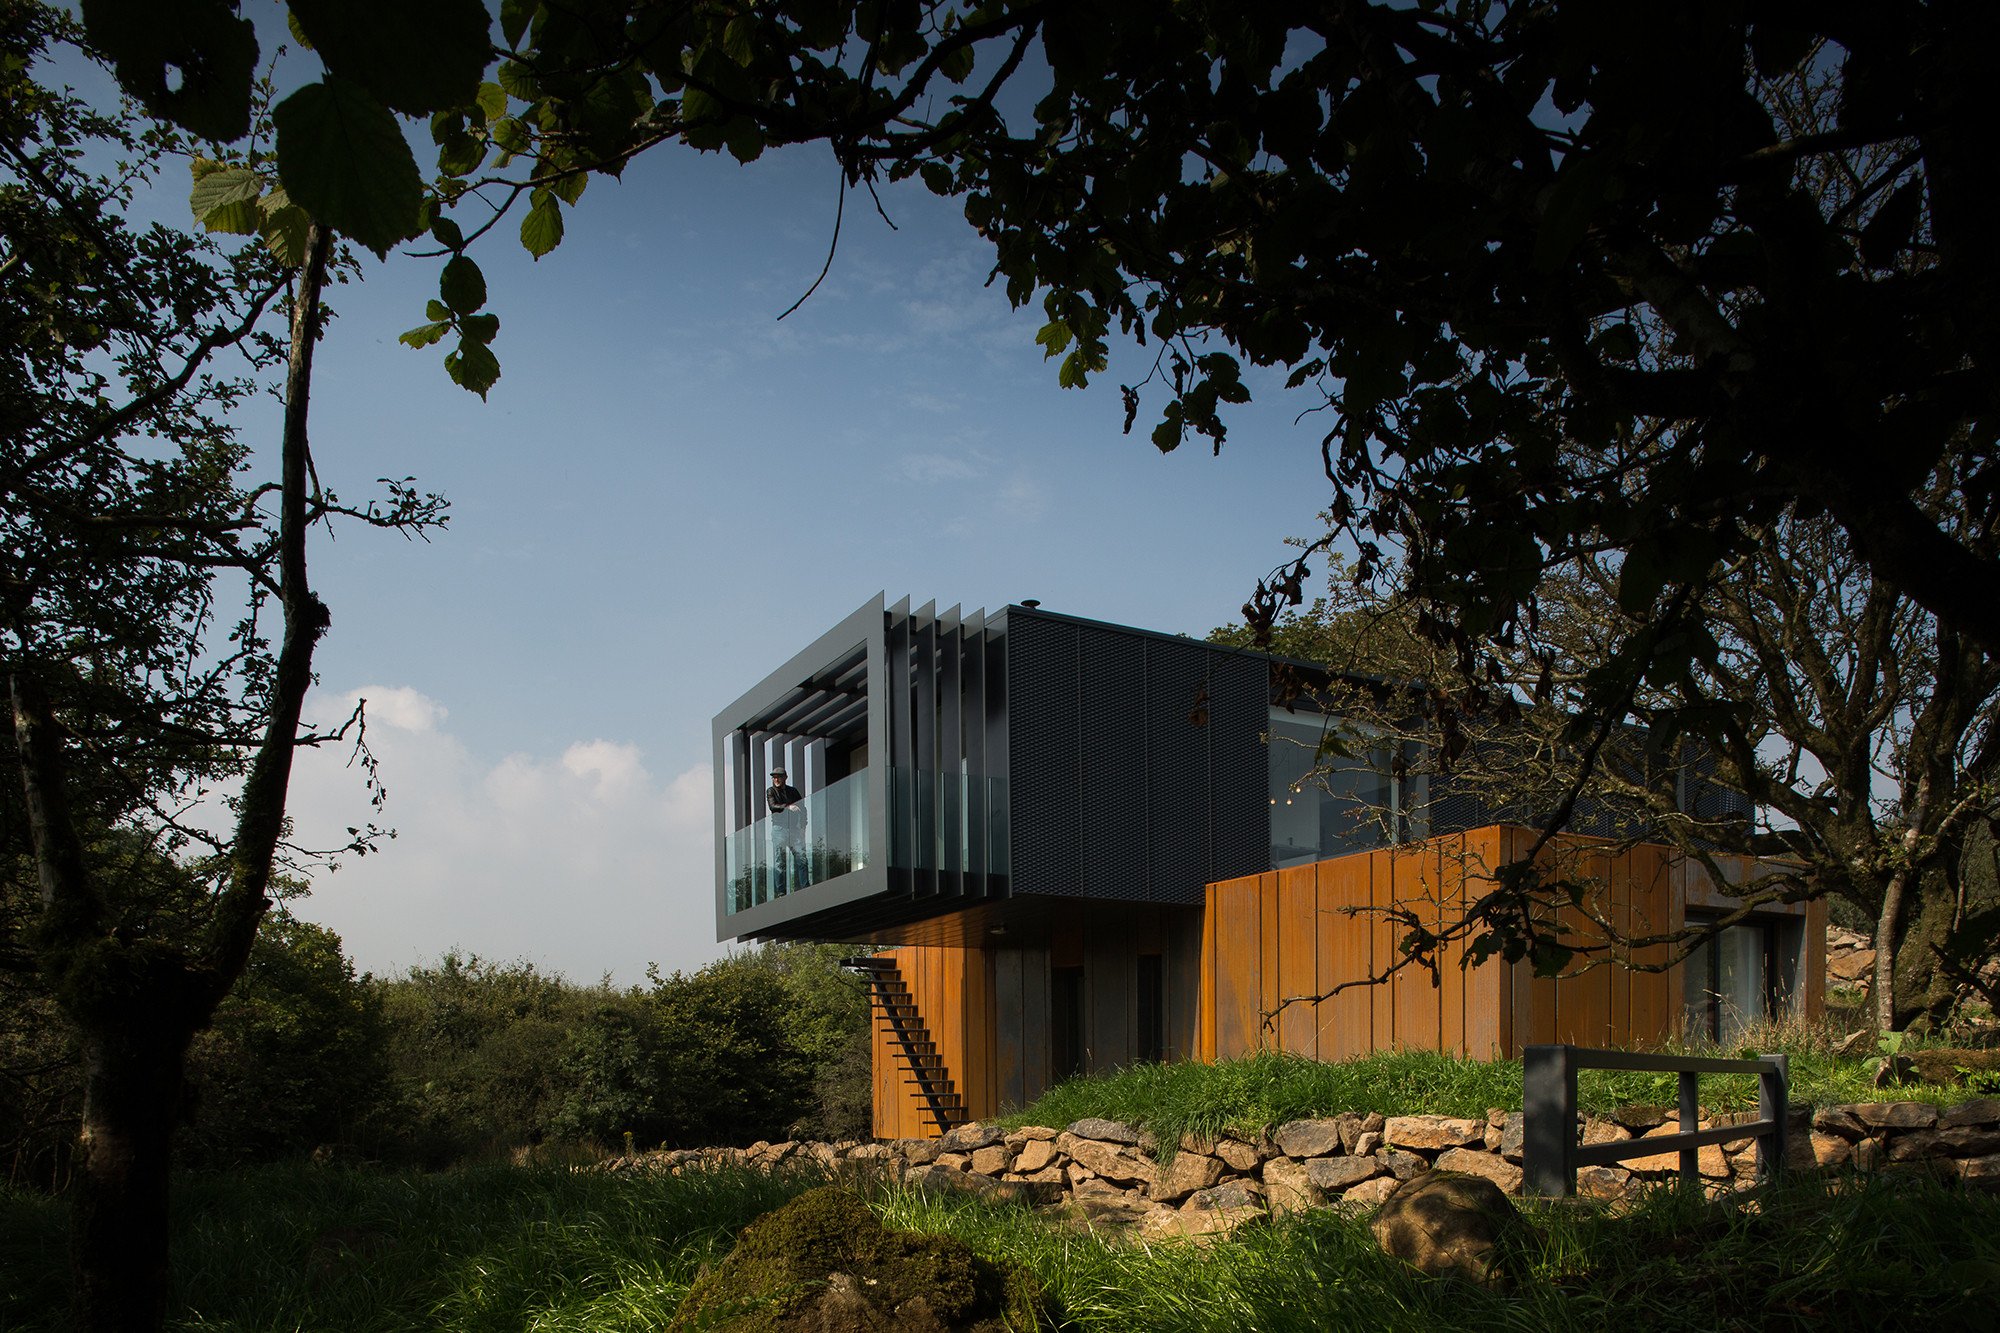 Casa d'Água em Grillagh / Patrick Bradley Architects, © Aidan Monaghan Photography